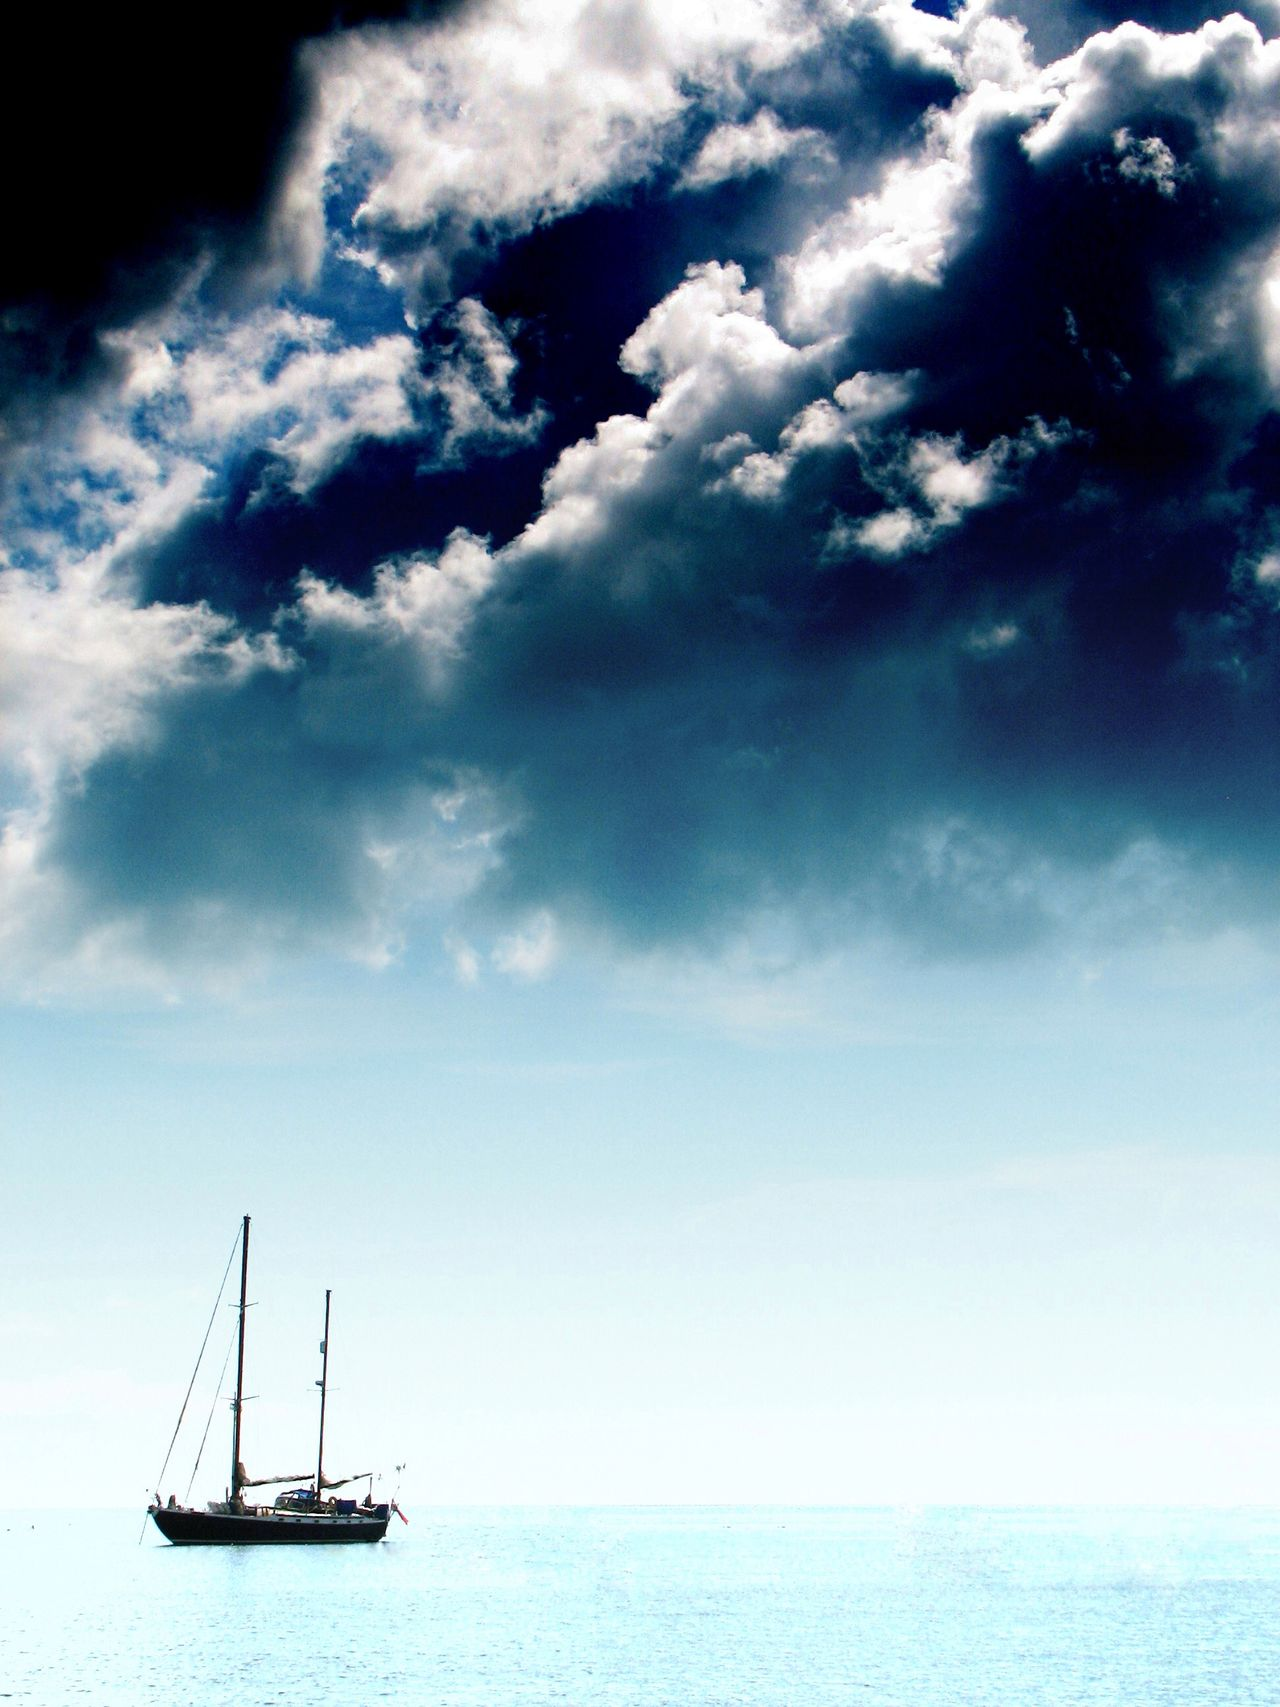 Ship Clouds Alone Peaceful Sea Ocean Solitude Ice Dark Clouds Black Clouds Looming Contrast Boat Float Lost Cold White Hopeless Helpless Calm The Calmness Within Foreboding Sailing Sailboat Panic